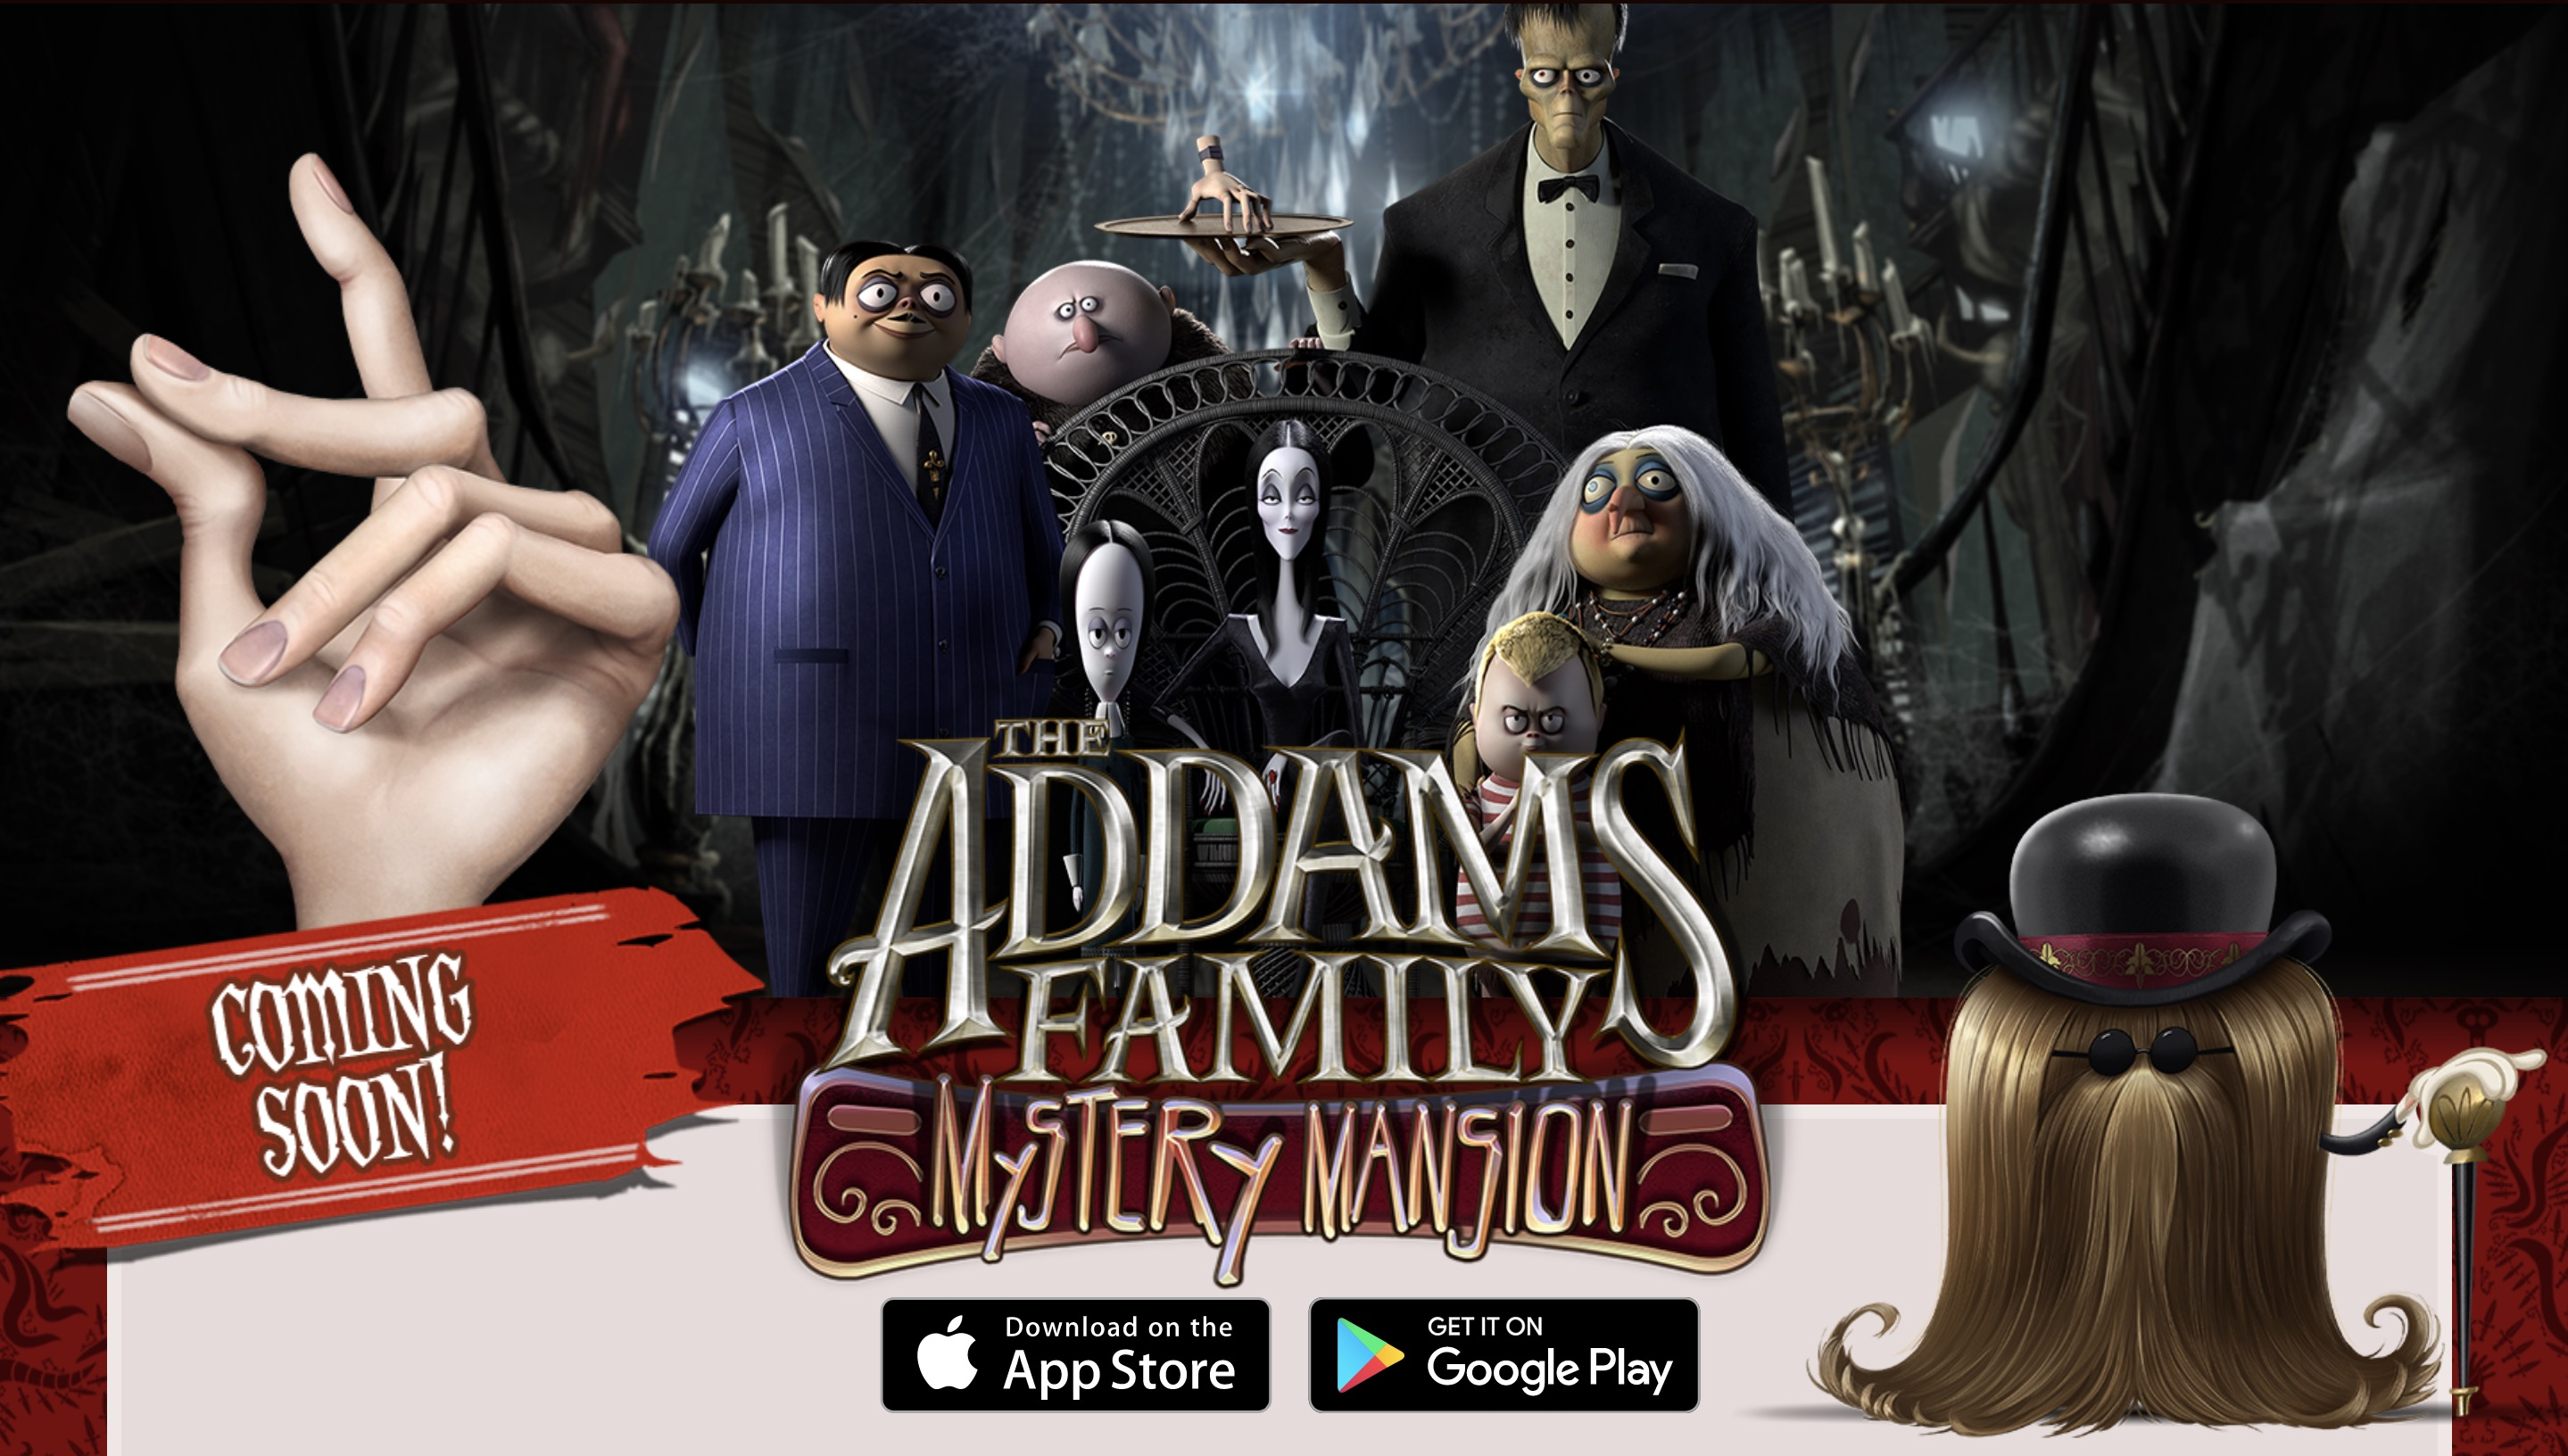 The Addams Family Mystery Mansion Is An Upcoming Mobile Game Based On The Upcoming Addams Family Animated Movie Toucharcade